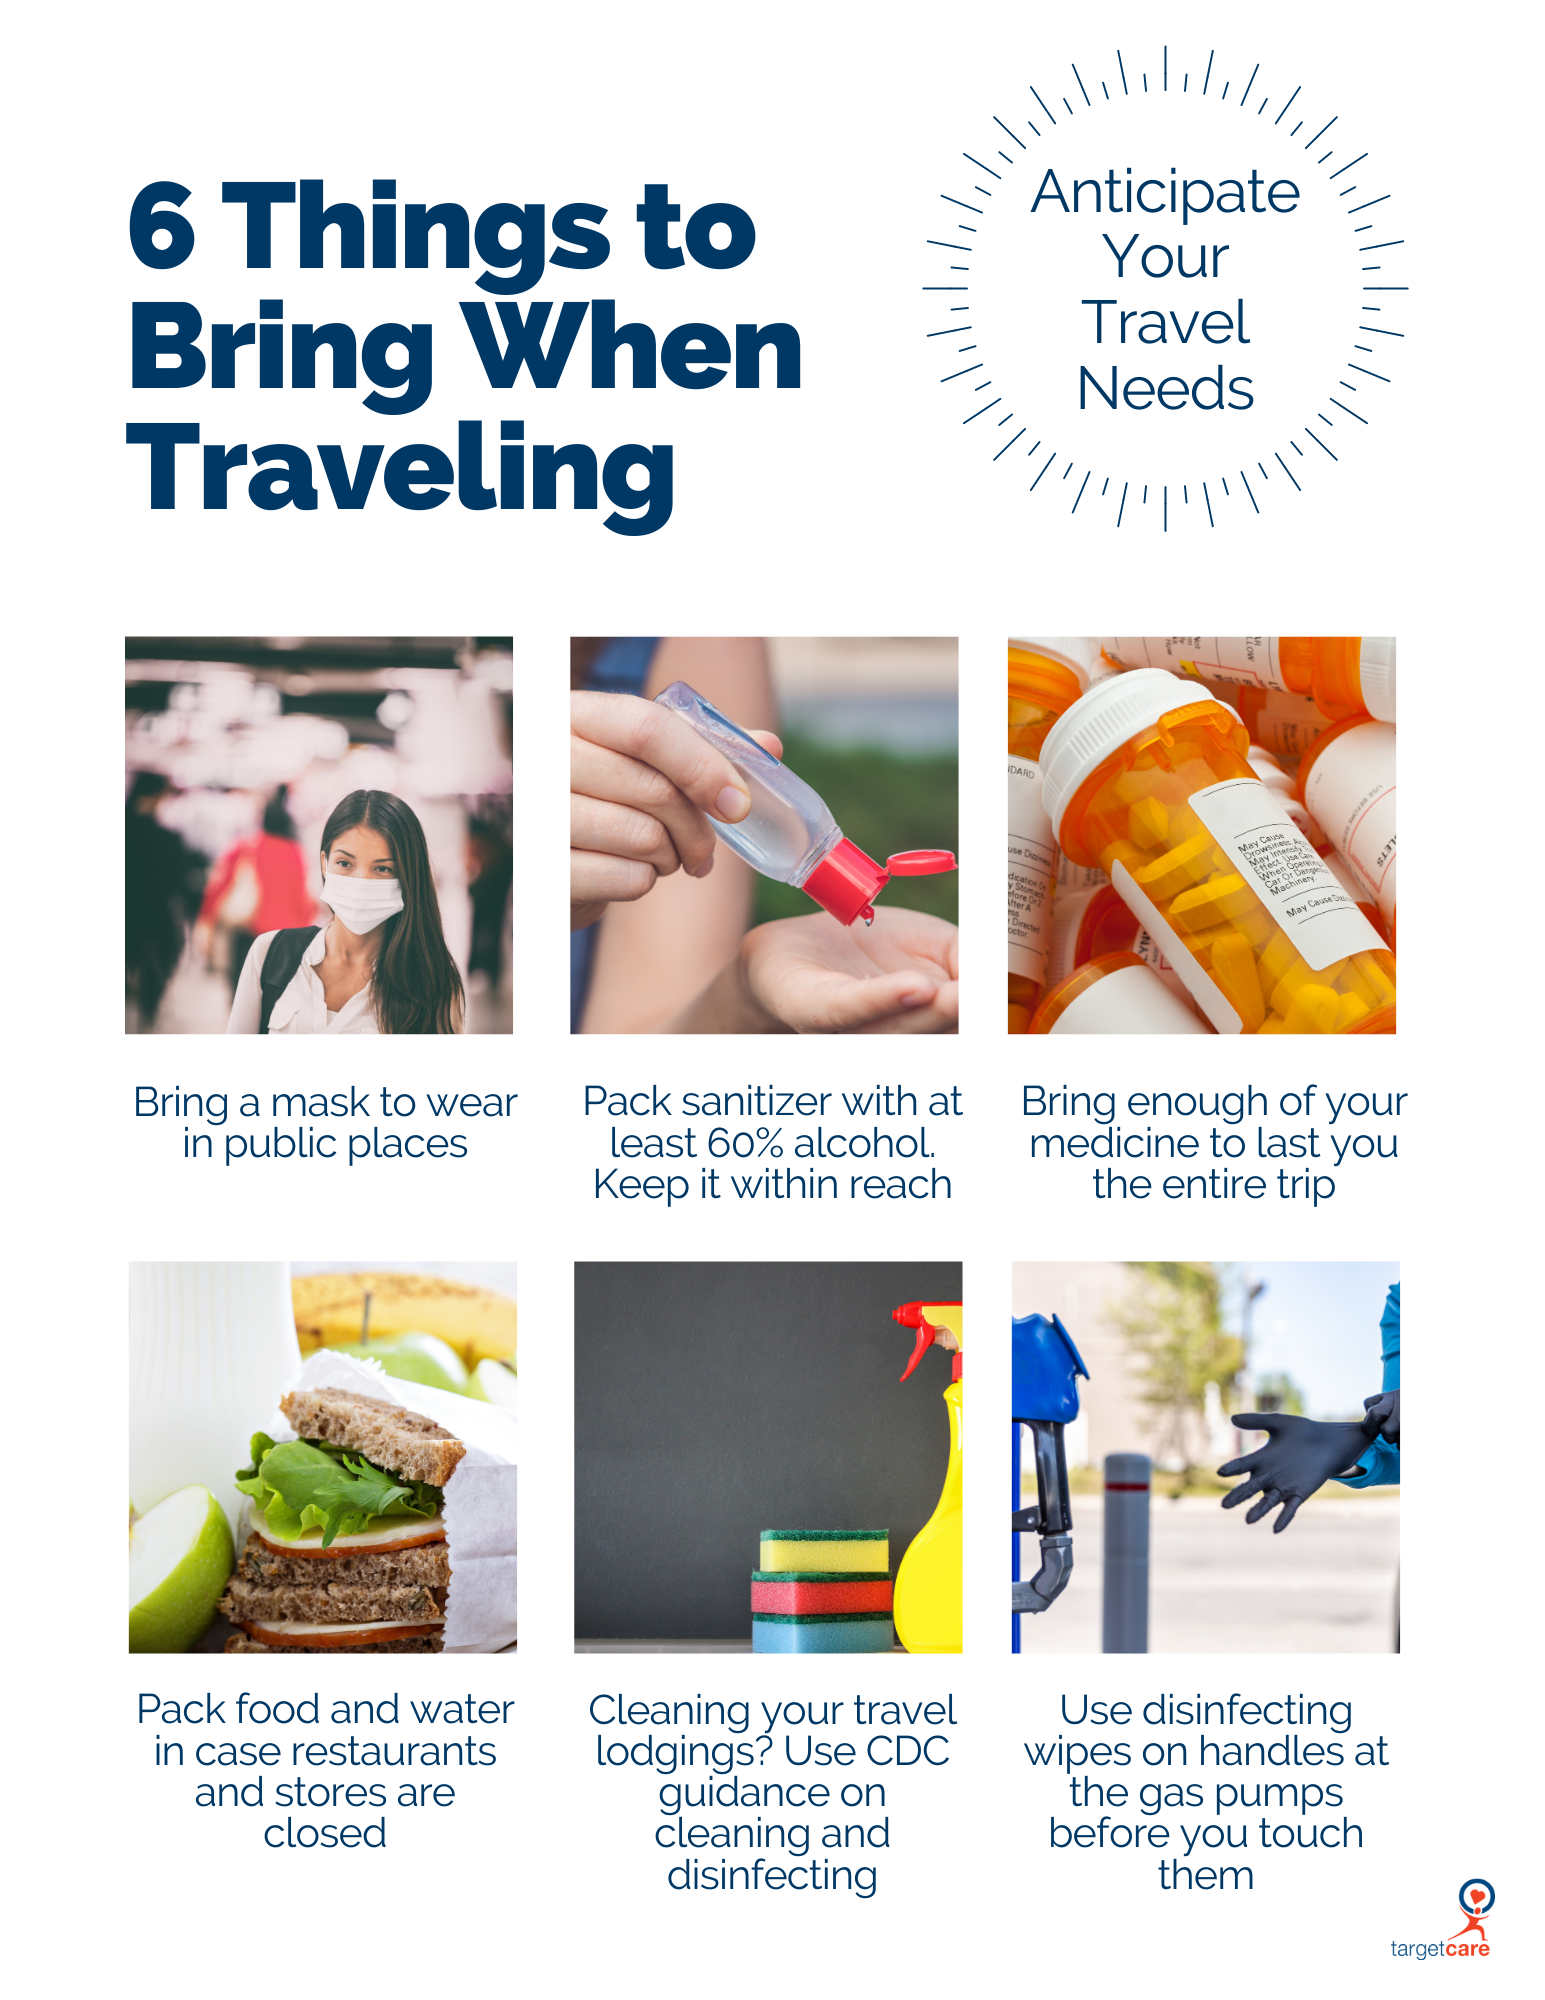 6 Things to Bring When Traveling